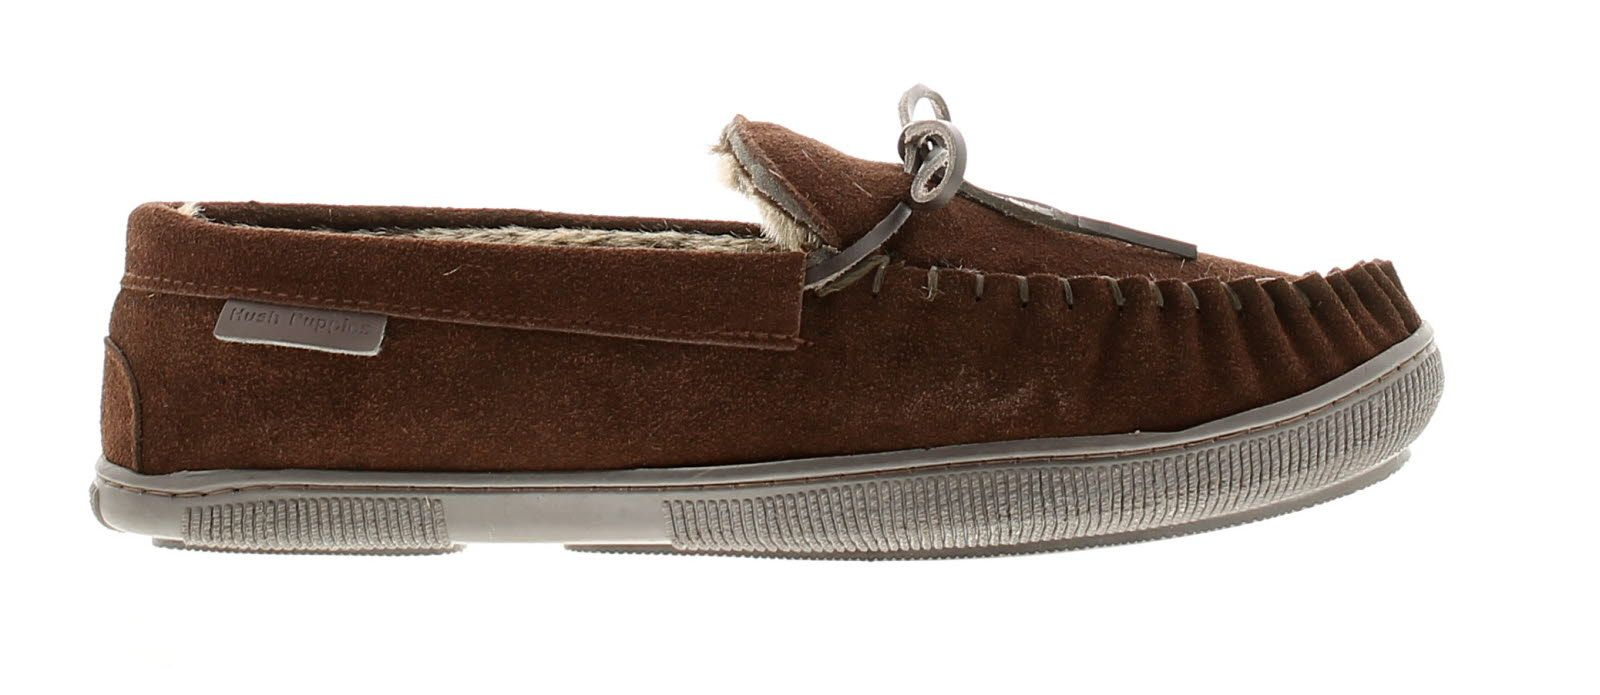 Hush Puppies ace leather mens full slippers chocolate